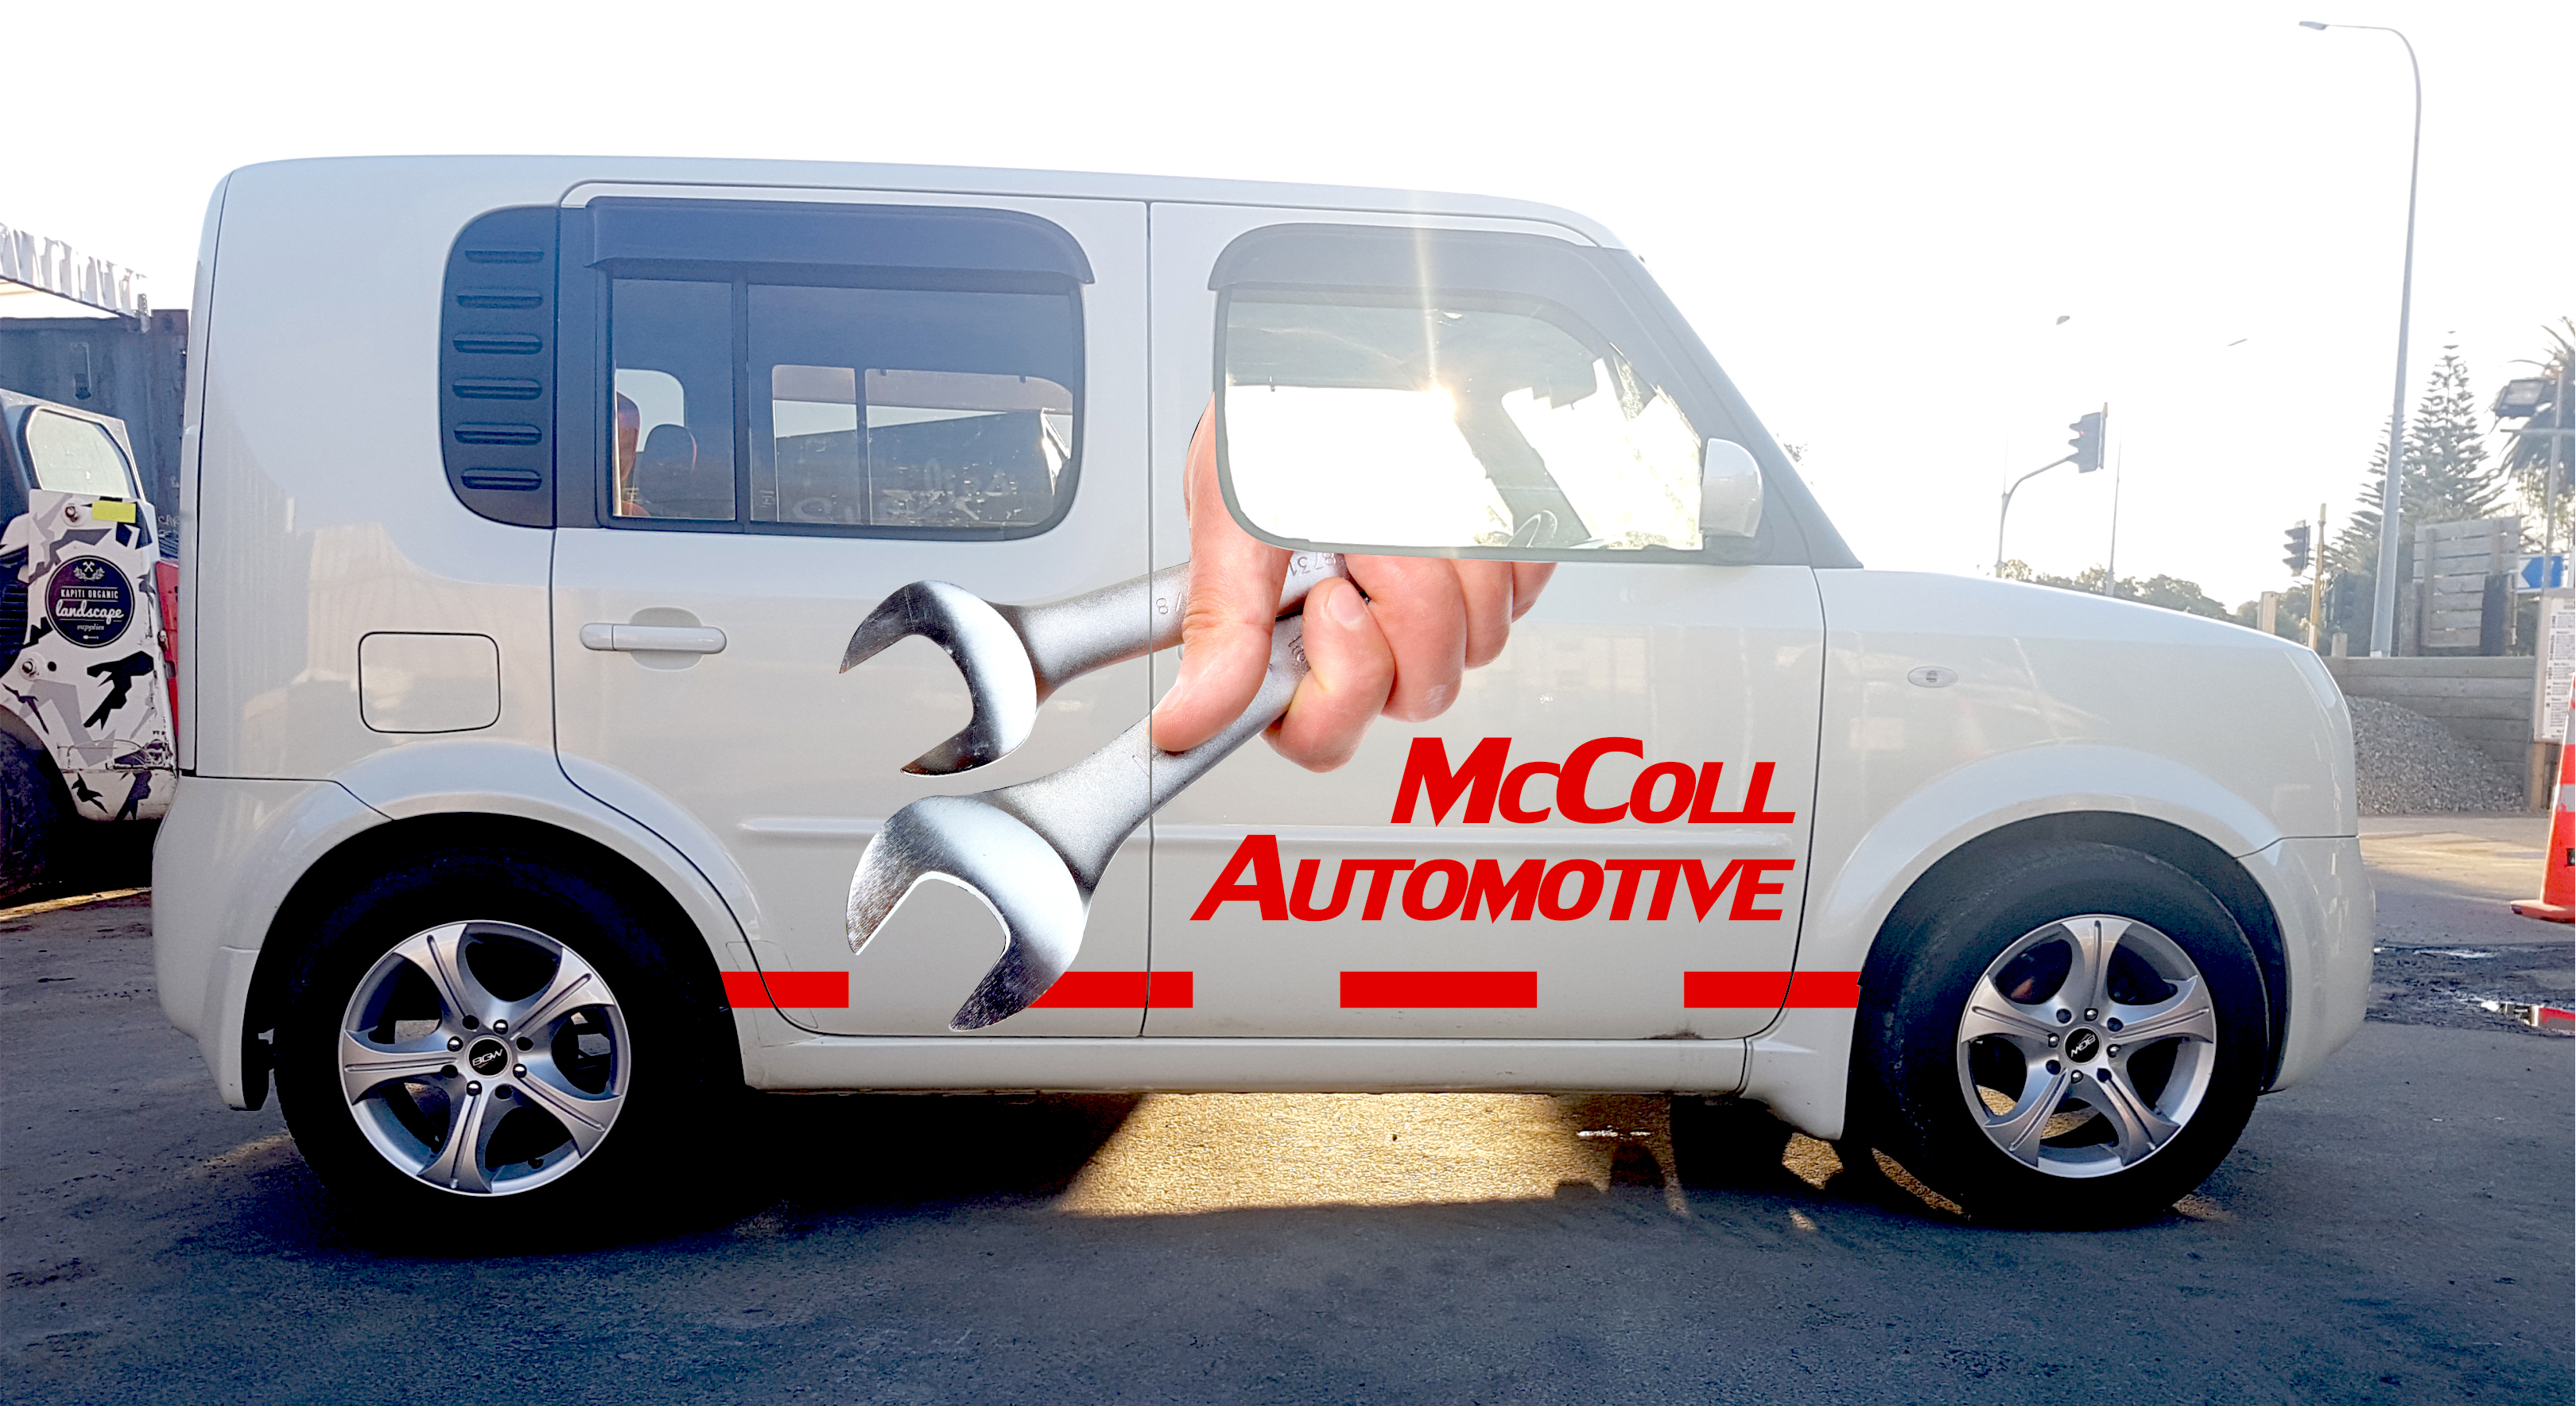 McColls Automotive